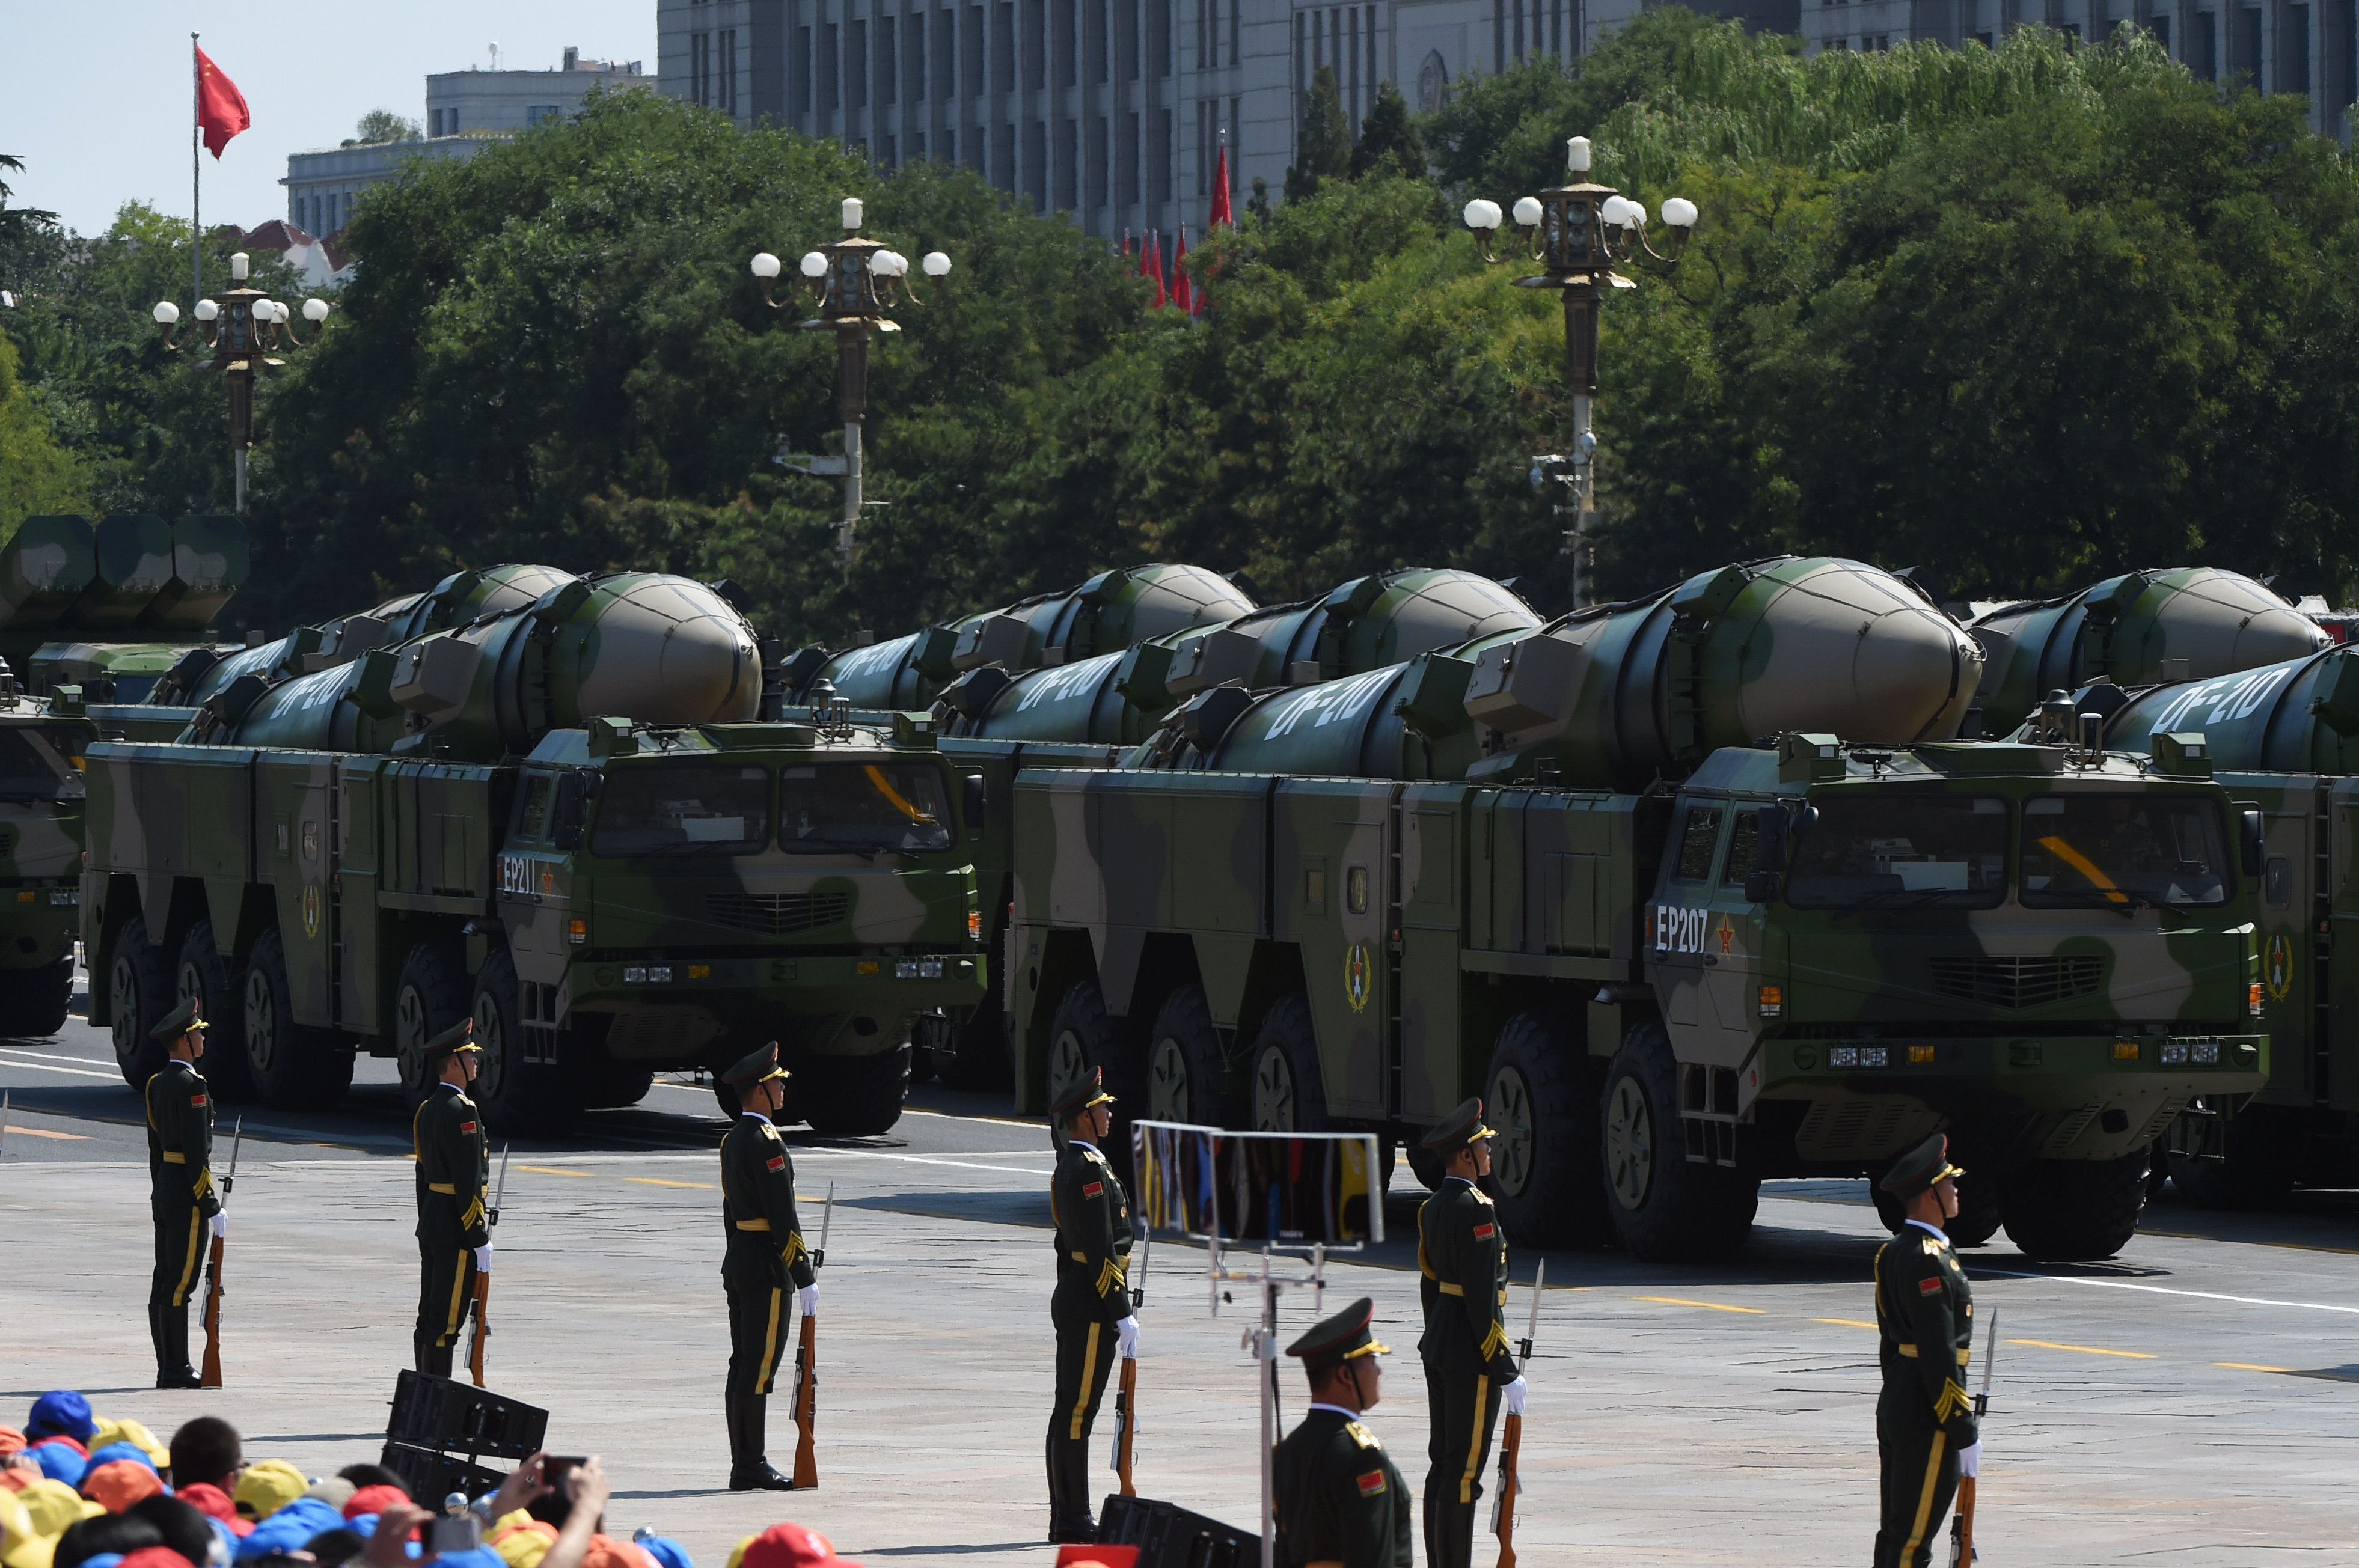 Military vehicles carrying DF-21D missiles are displayed in a military parade at Tiananmen Square in Beijing on September 3, 2015, marking the 70th anniversary of victory over Japan and the end of World War II